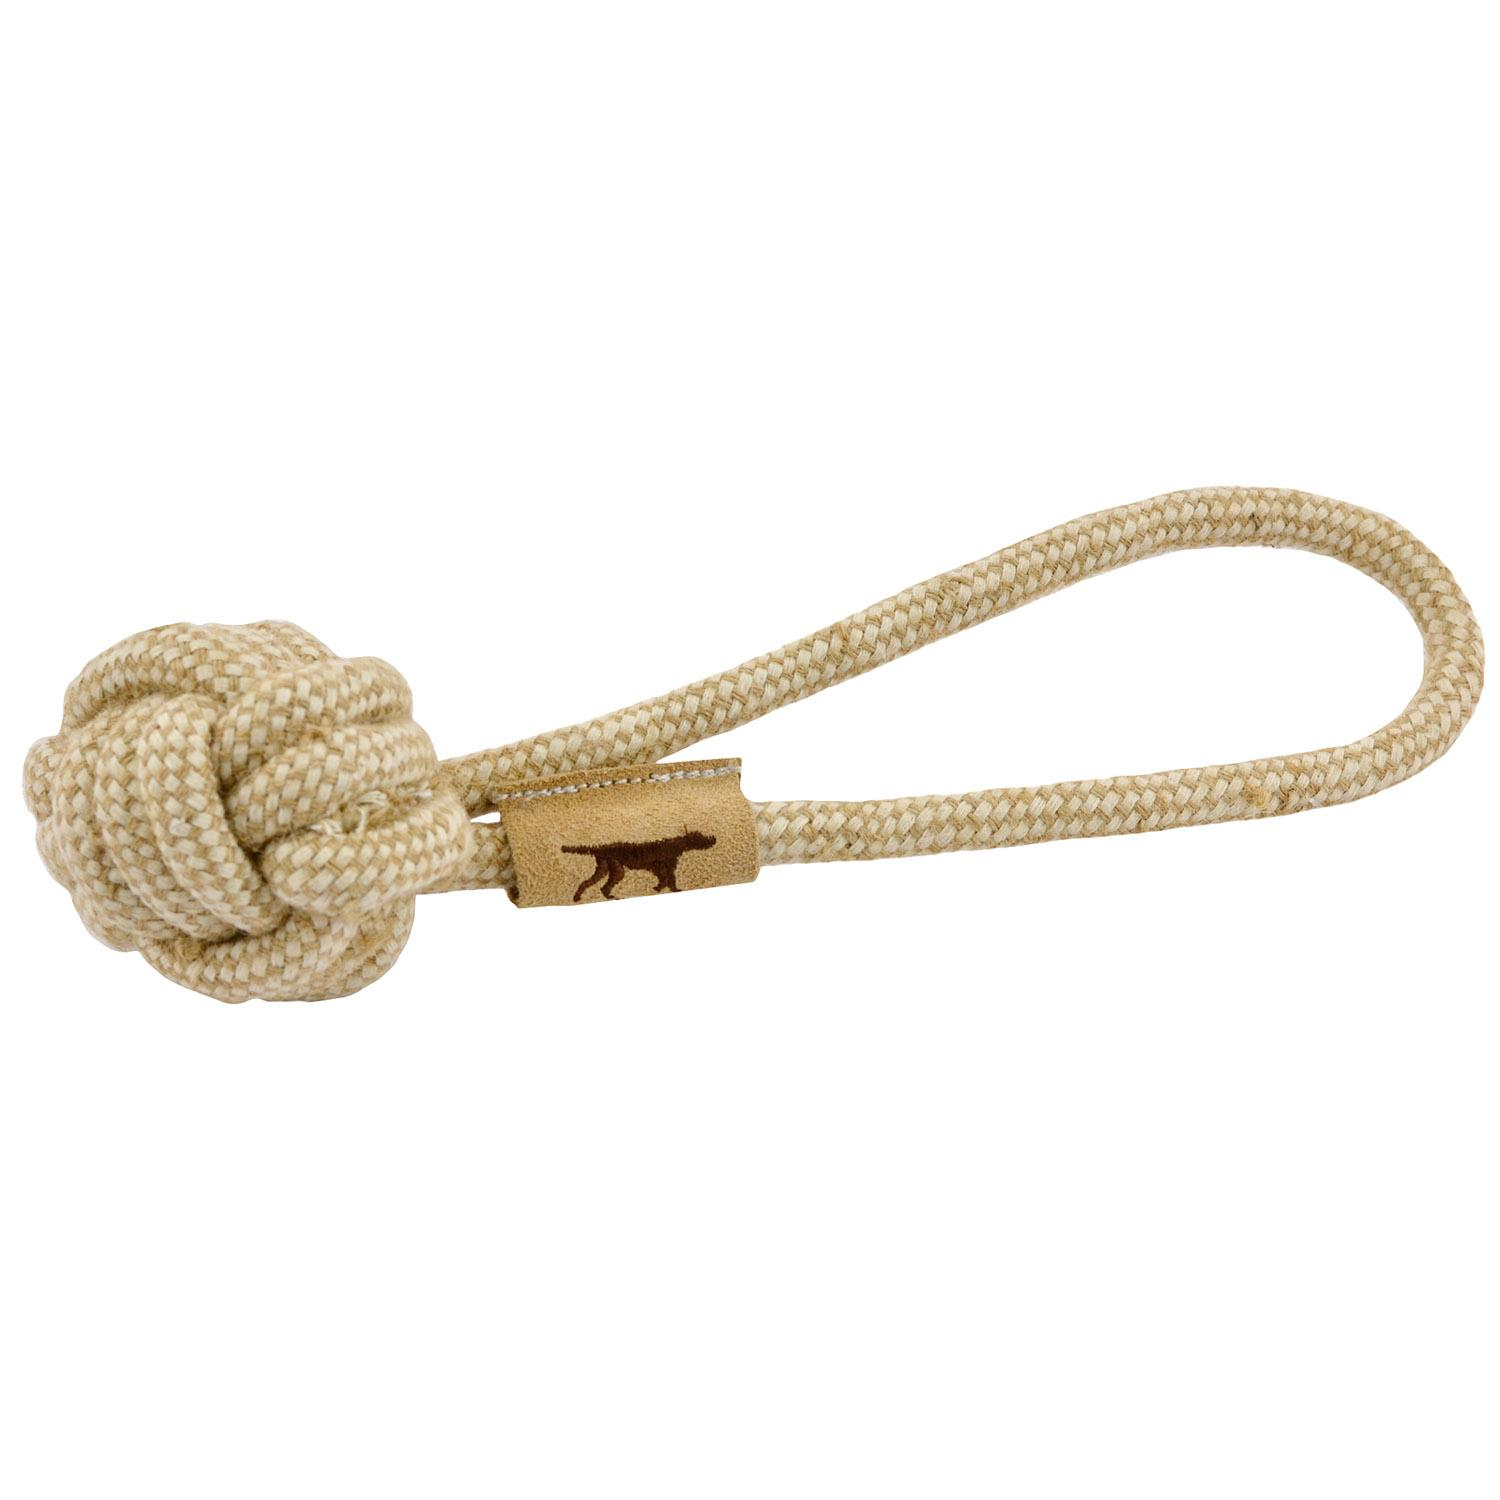 Tall Tails Natural Cotton and Jute Rope Tug Dog Toy